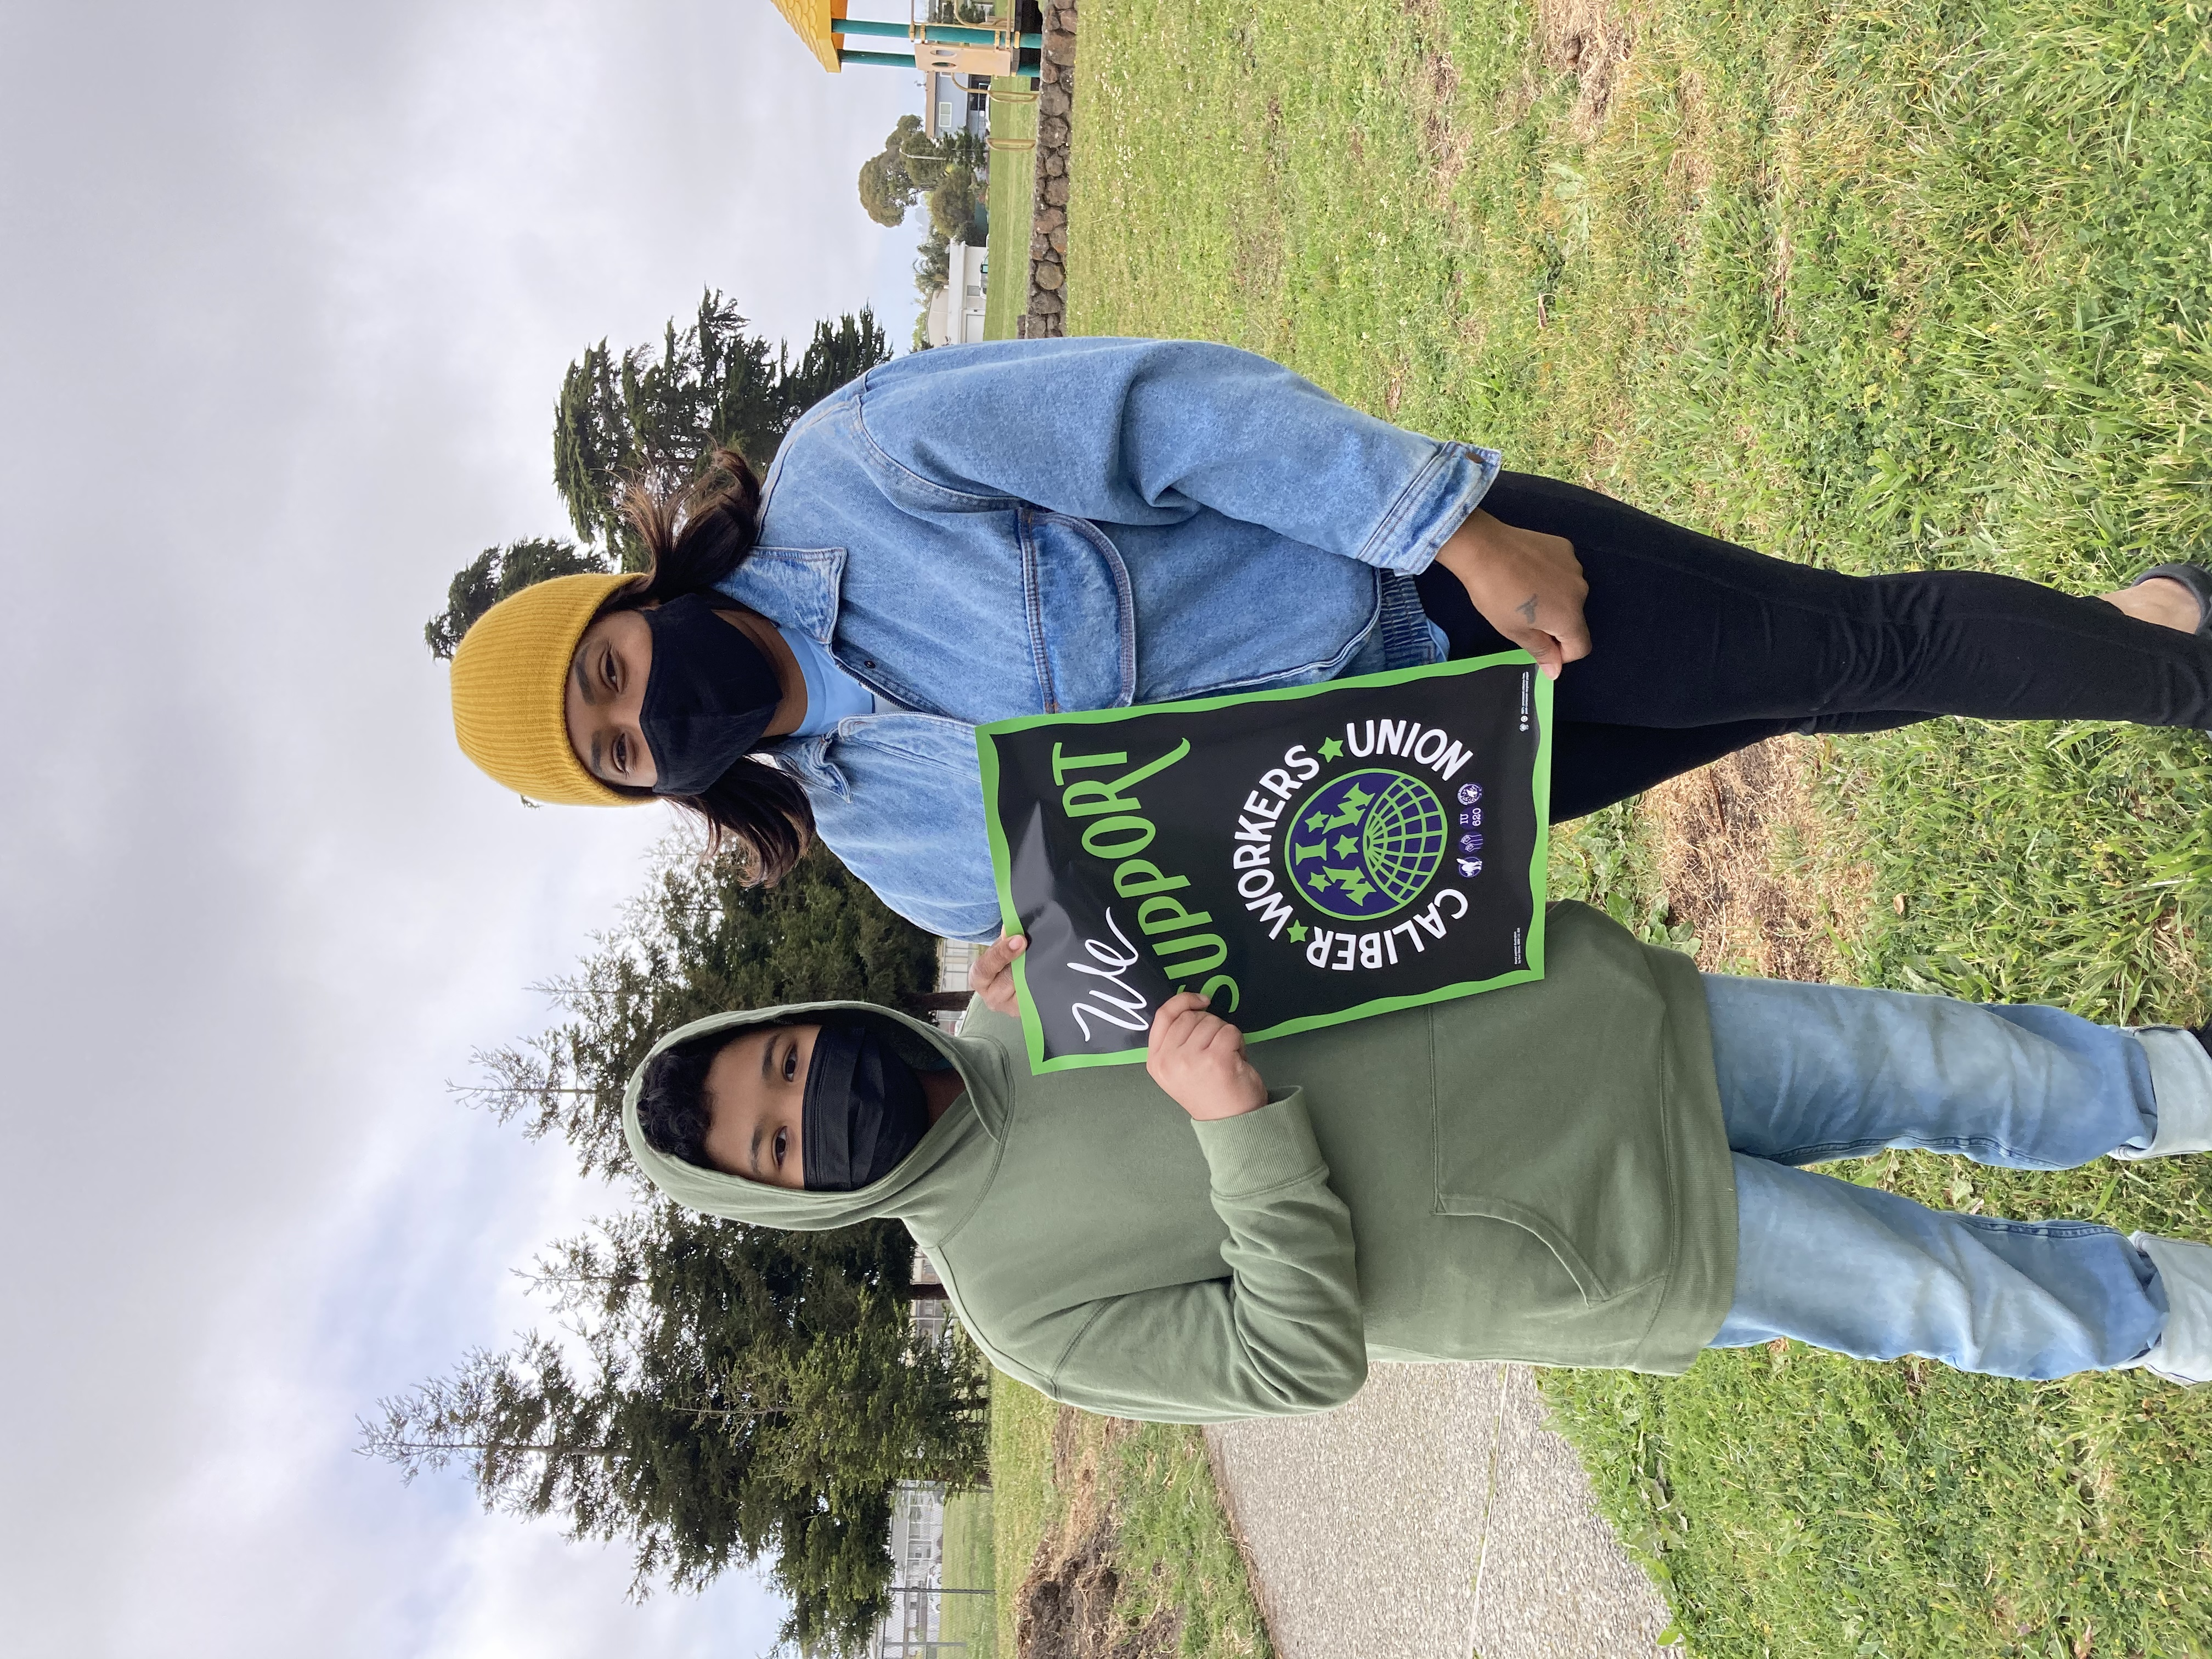 Two Caliber Workers Union members holding a sign in support of teachers and their union.